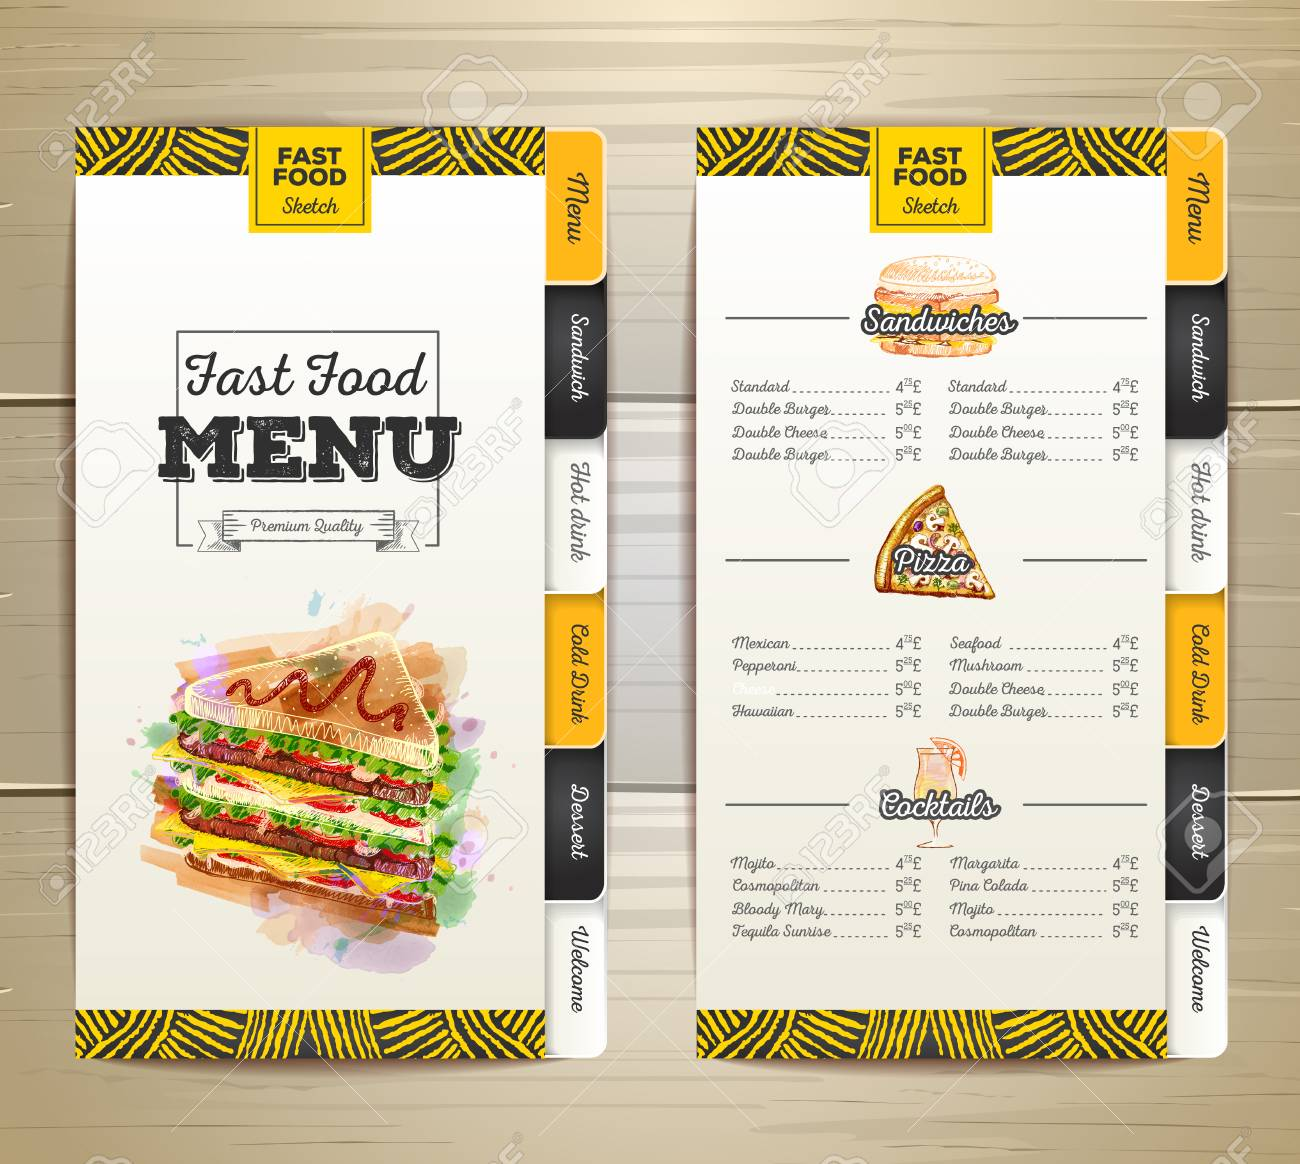 vintage chalk drawing fast food menu design royalty free cliparts